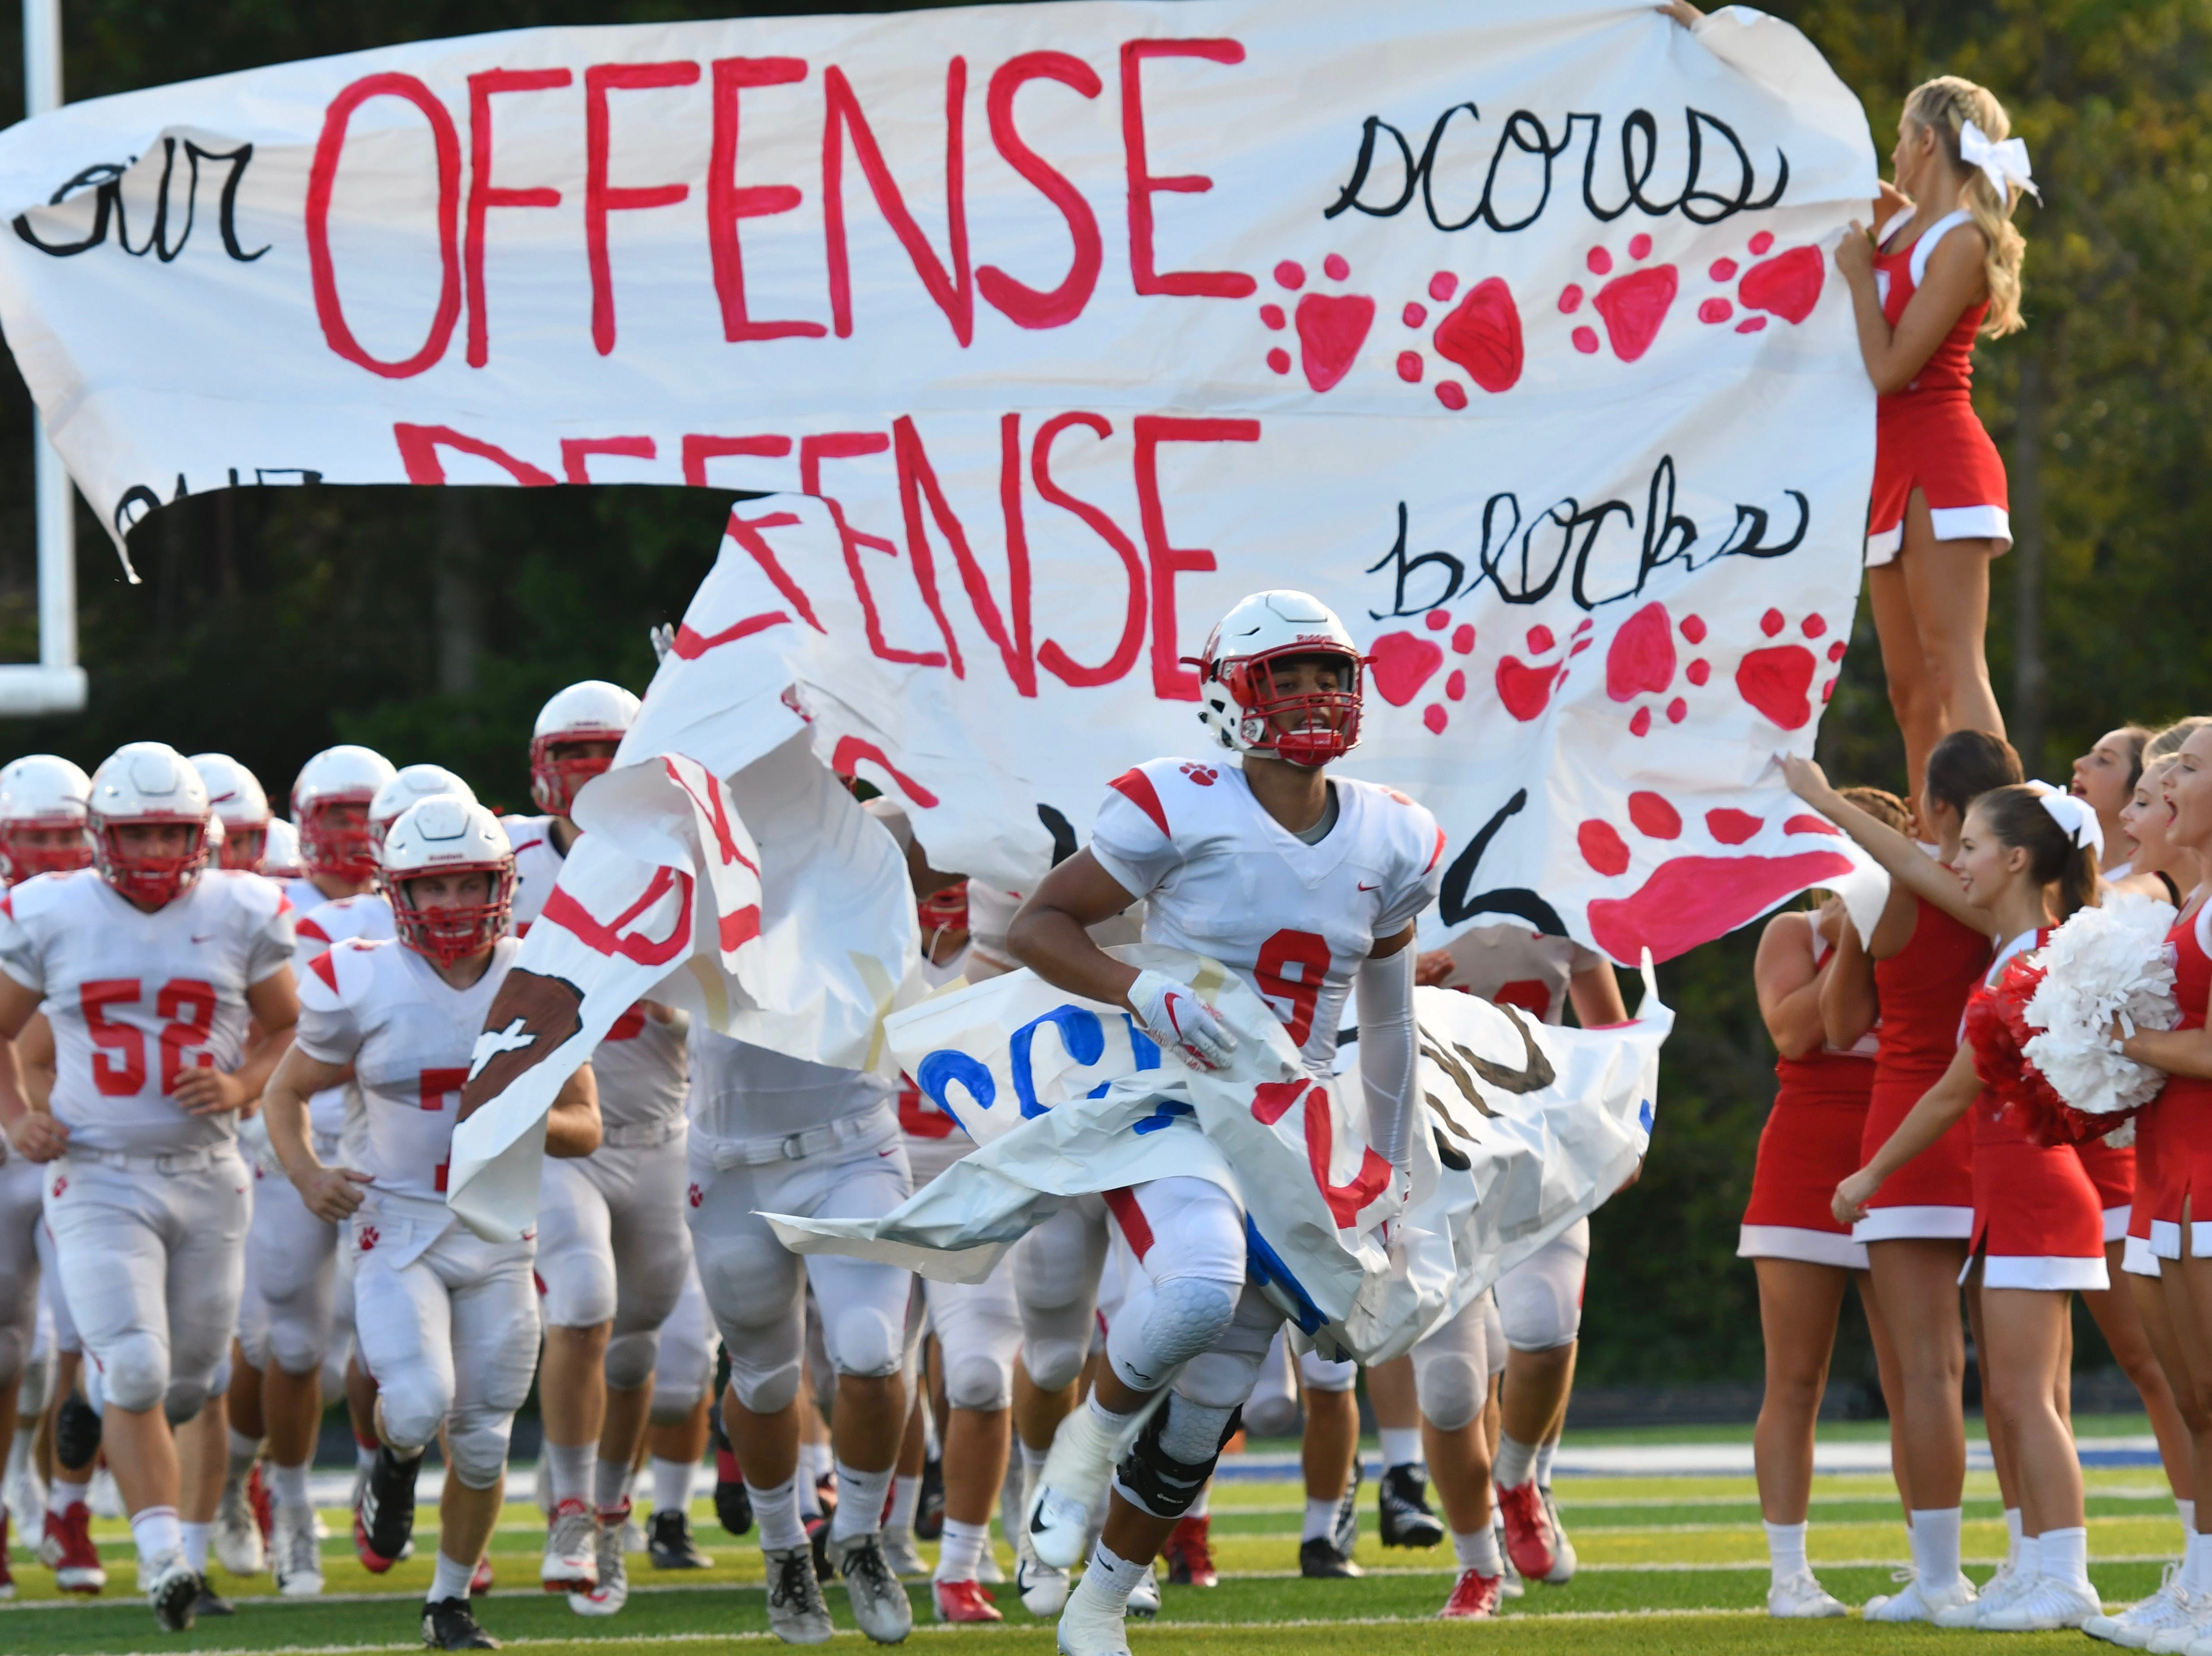 The Beechwood Tigers take the field Friday, Sept. 14, 2018.